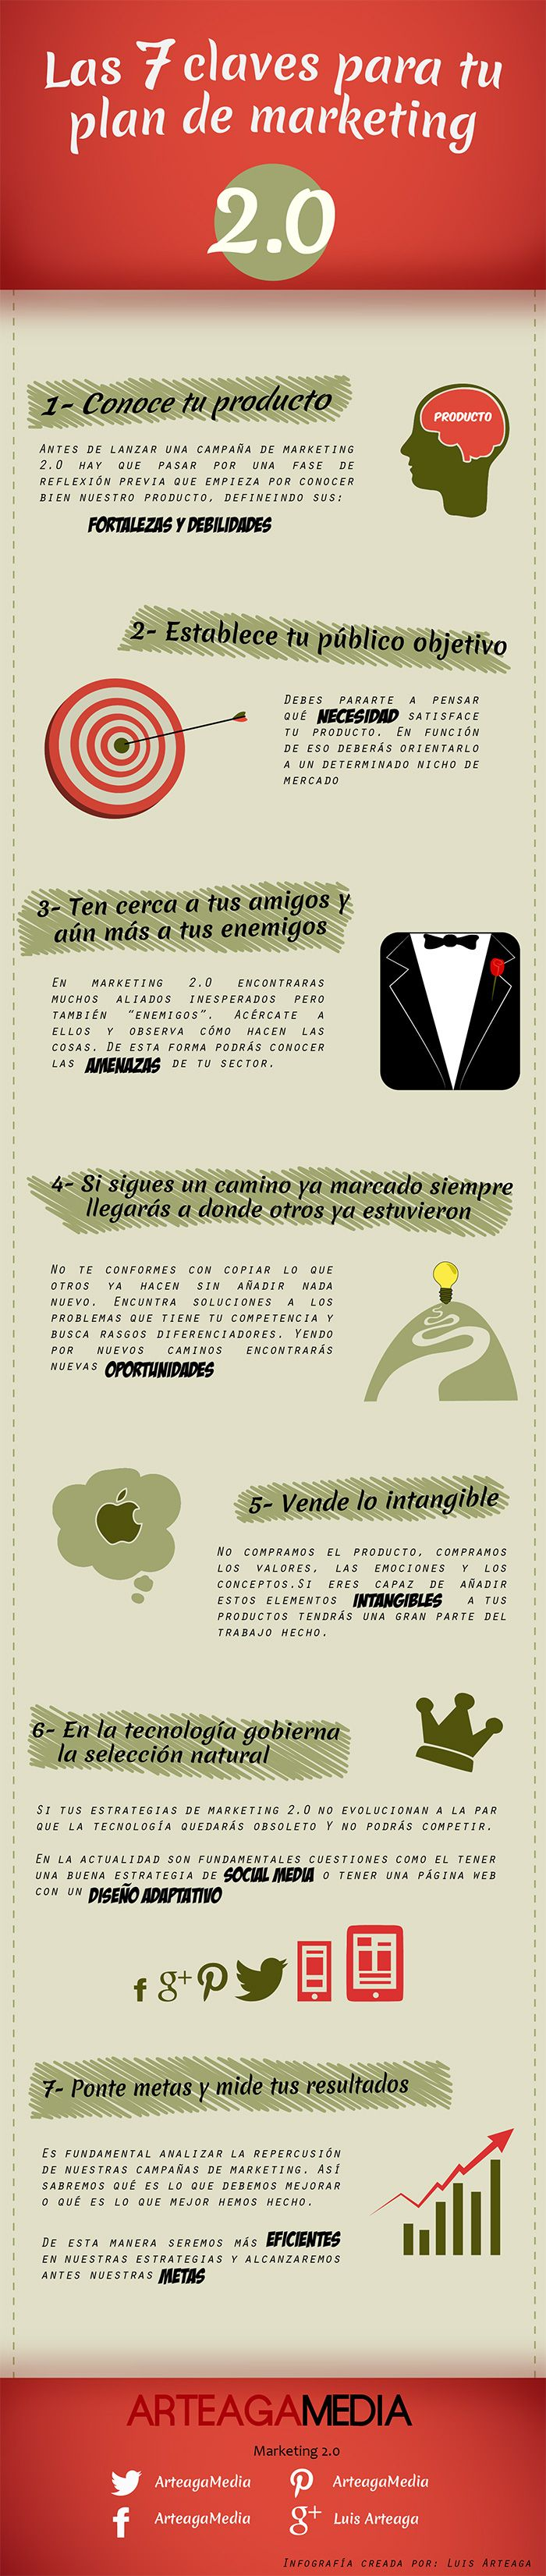 7 claves para tu plan de marketing 2.0 #infografia #infographic #marketing #socialmedia